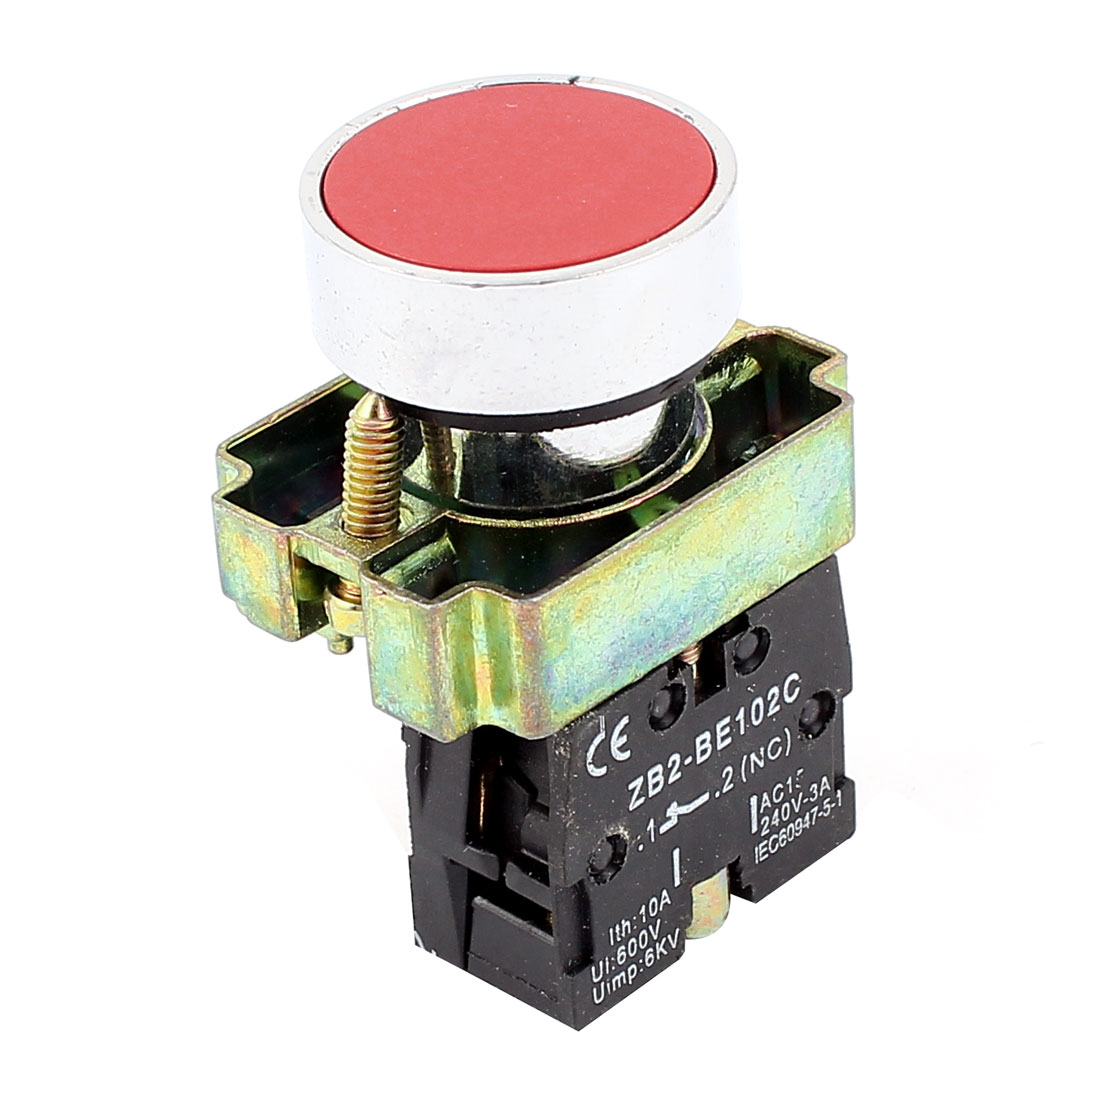 22mm Panel Mount SPST Normally Closed Momentary Push Button Switch Red